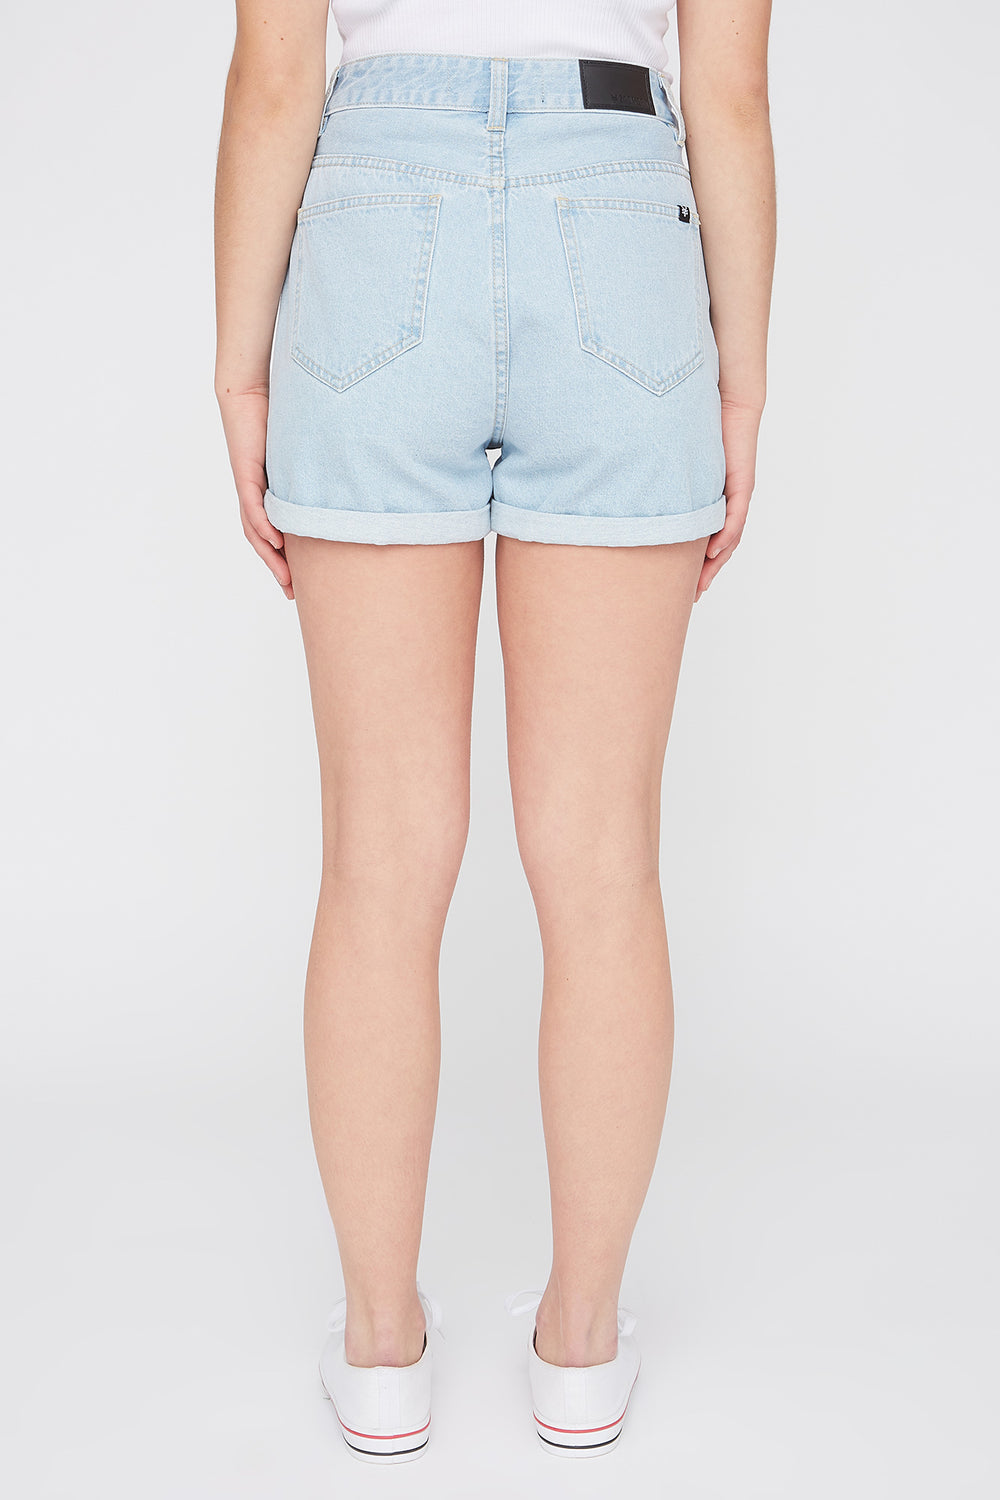 Short Jean Style Mom Délavé Pâle Zoo York Femme Bleu denim pale